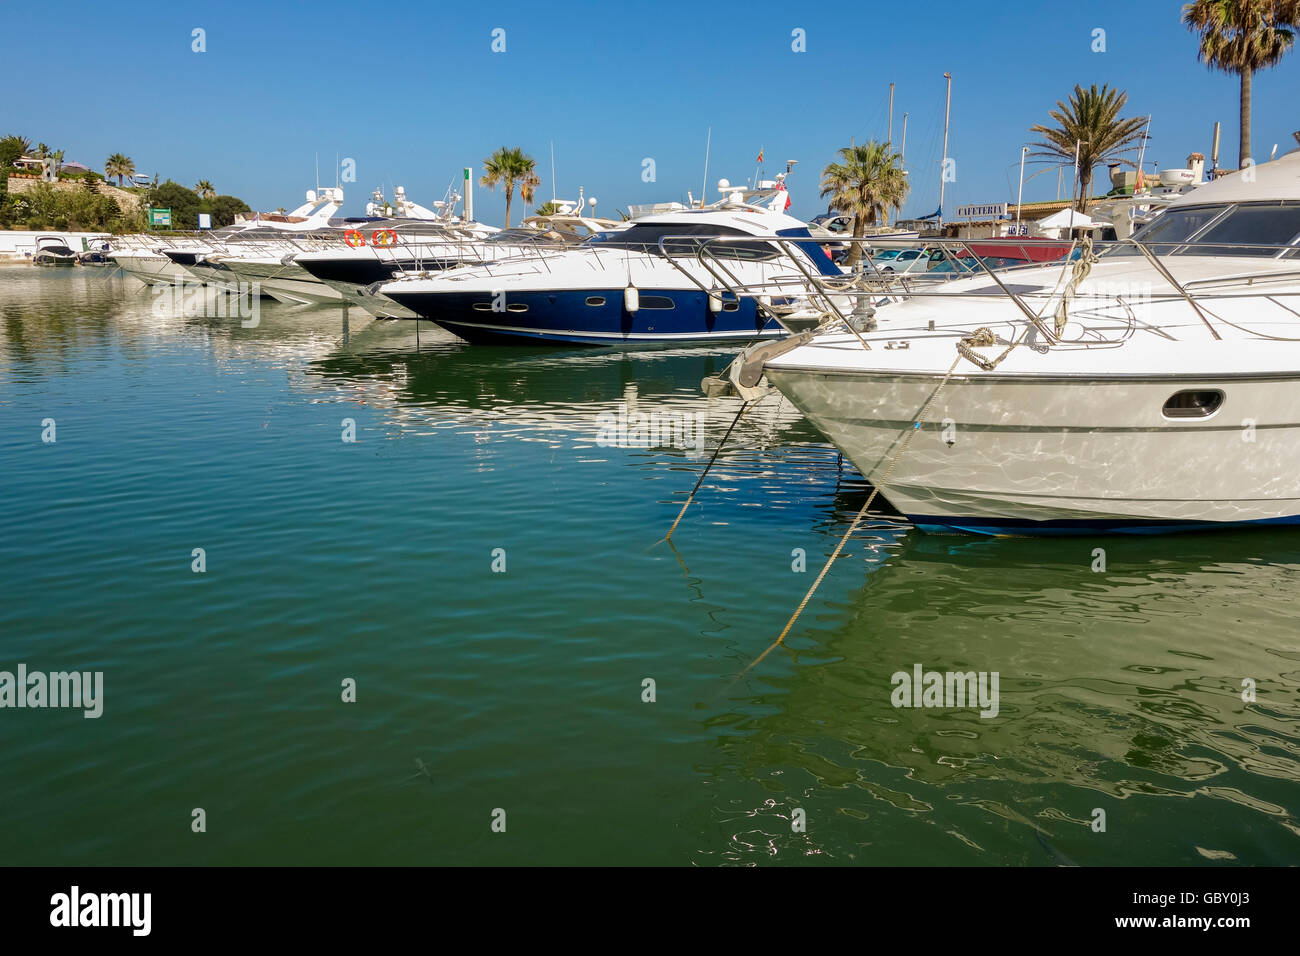 Yachts moored in Mediterranean style marina of Cabopino, Andalusia, Spain. Stock Photo